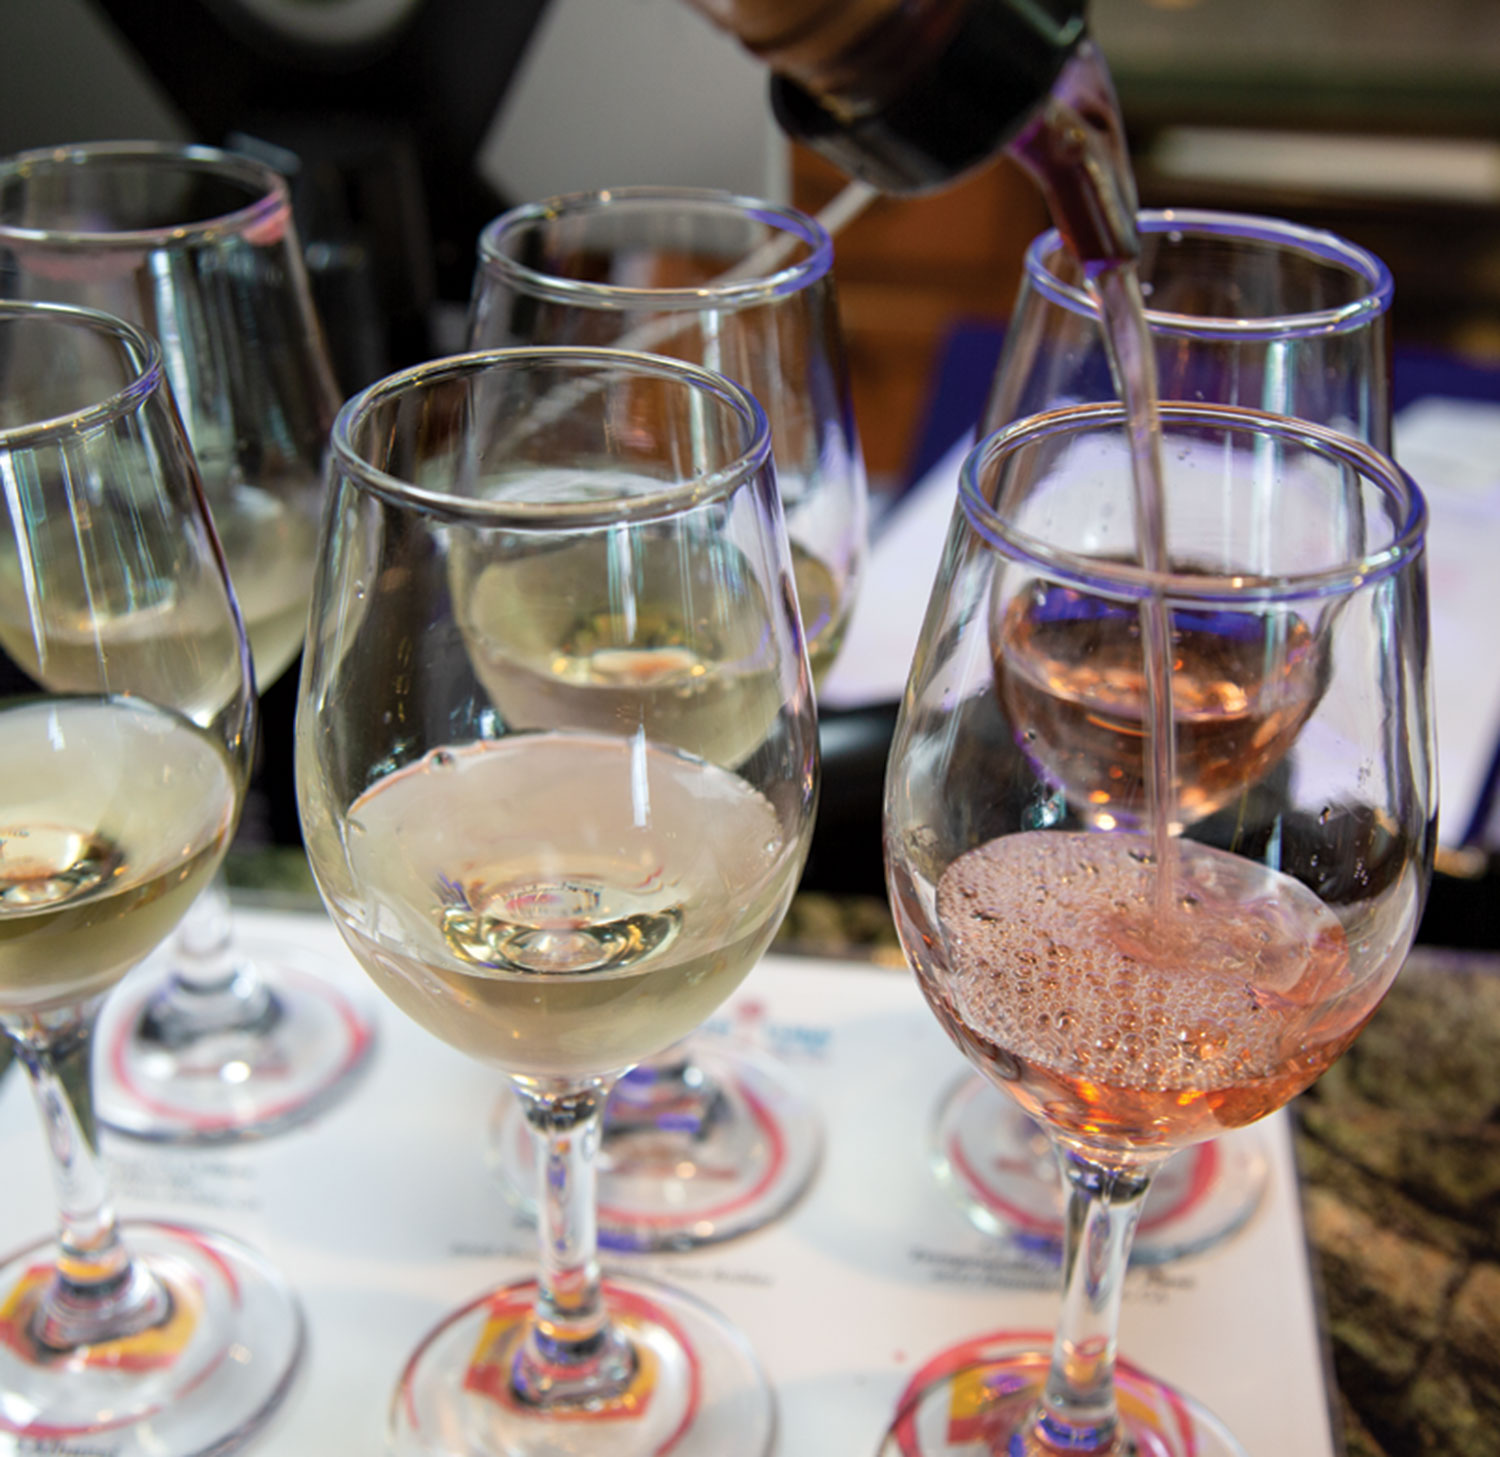 Photos courtesy Visit Ventura; Leah LeMoine; Wine Wars at VinTura Tasting Room